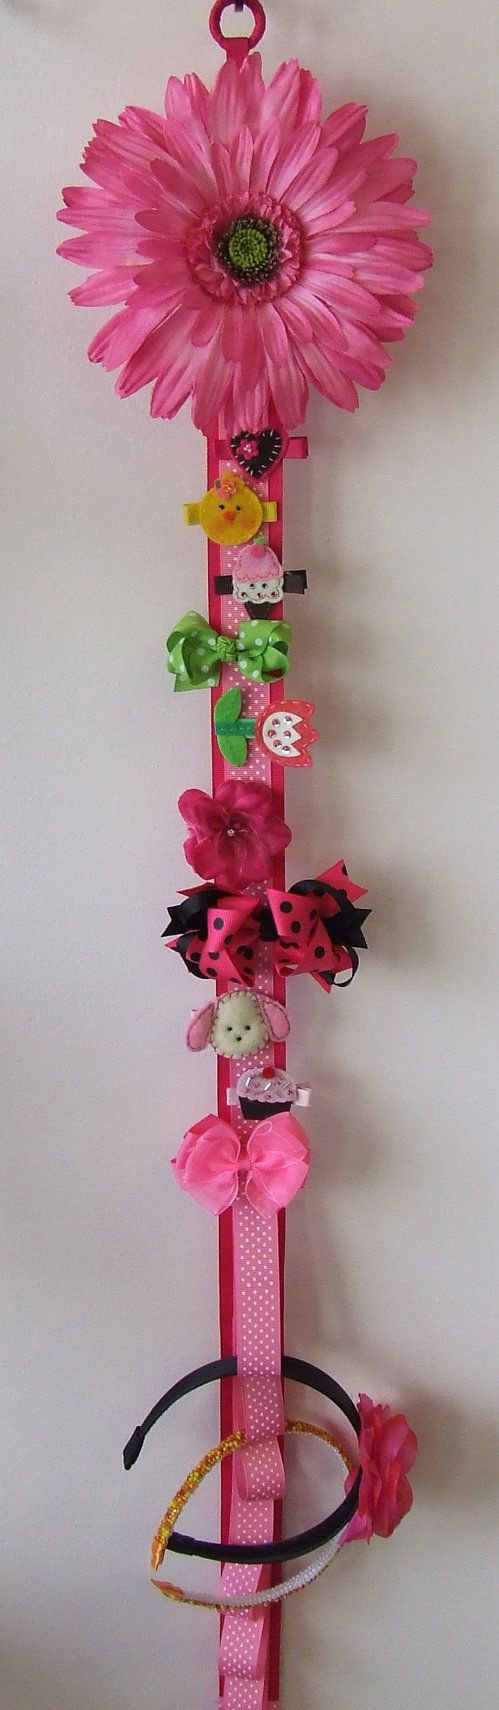 Barrette Hair Bow and Headband Holder DELUXE Wall Hanging Hair Accessories Storage with BLOOMING ...